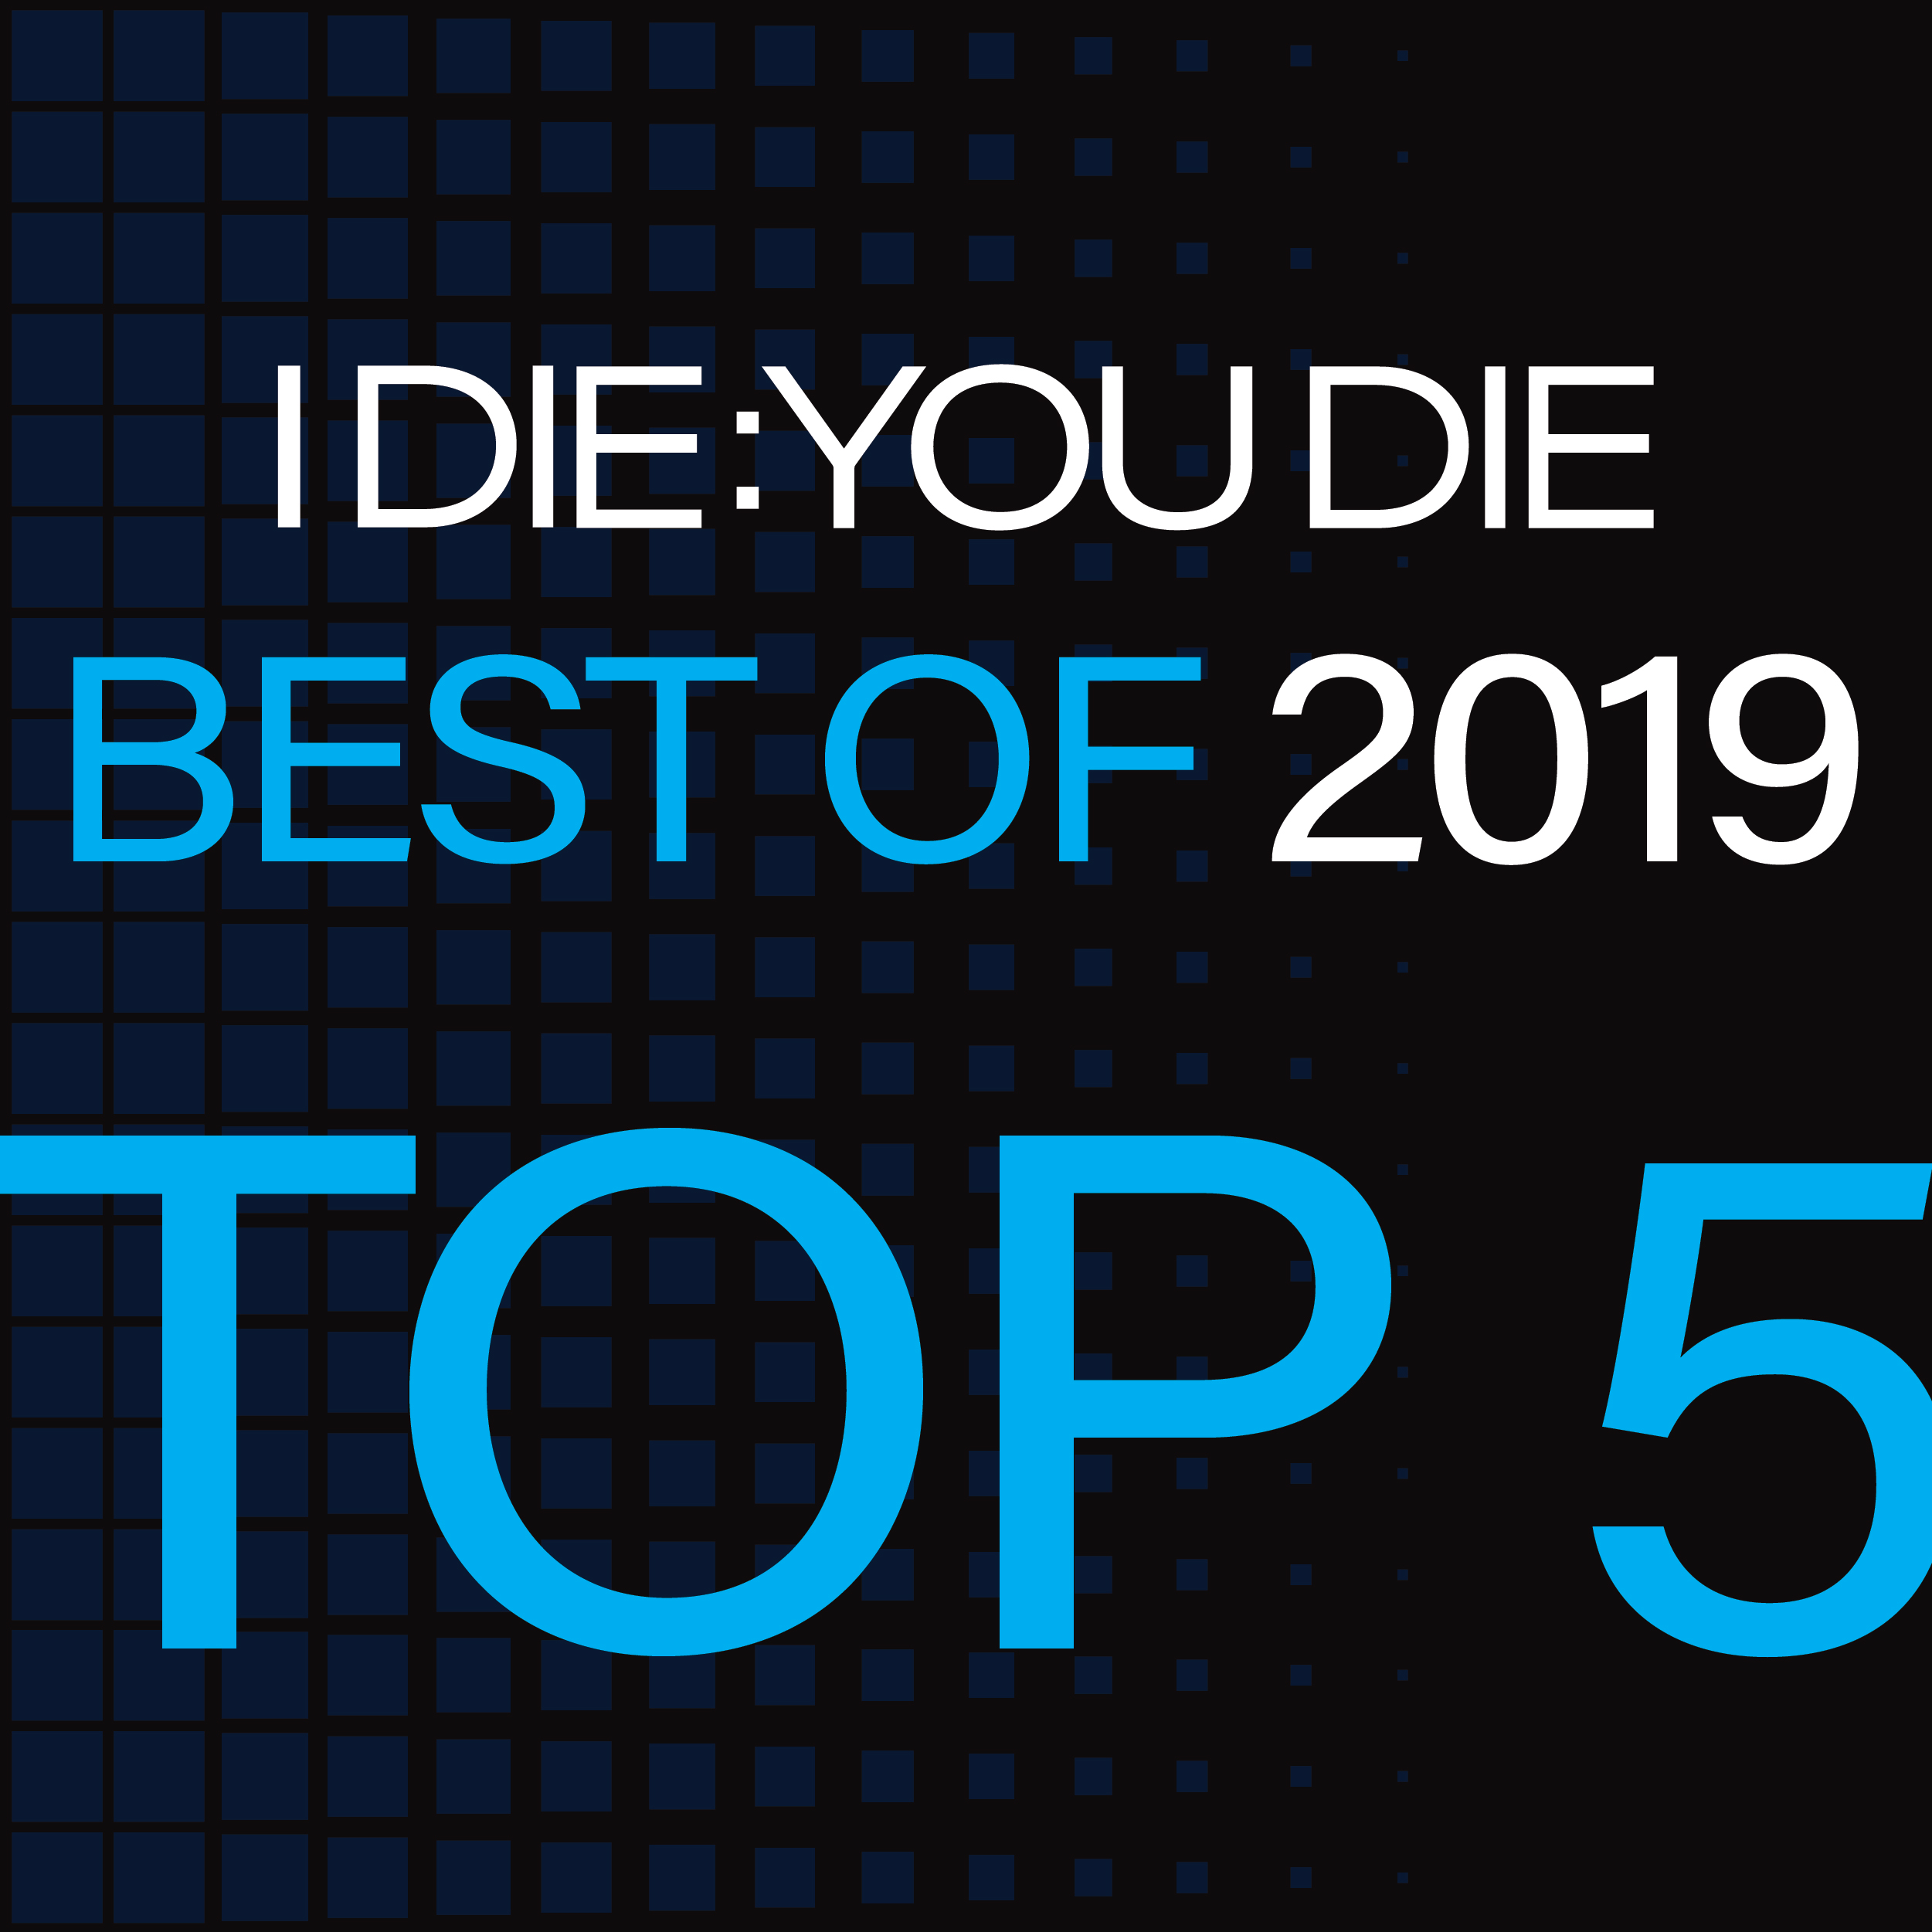 Best of 2019: Top 5